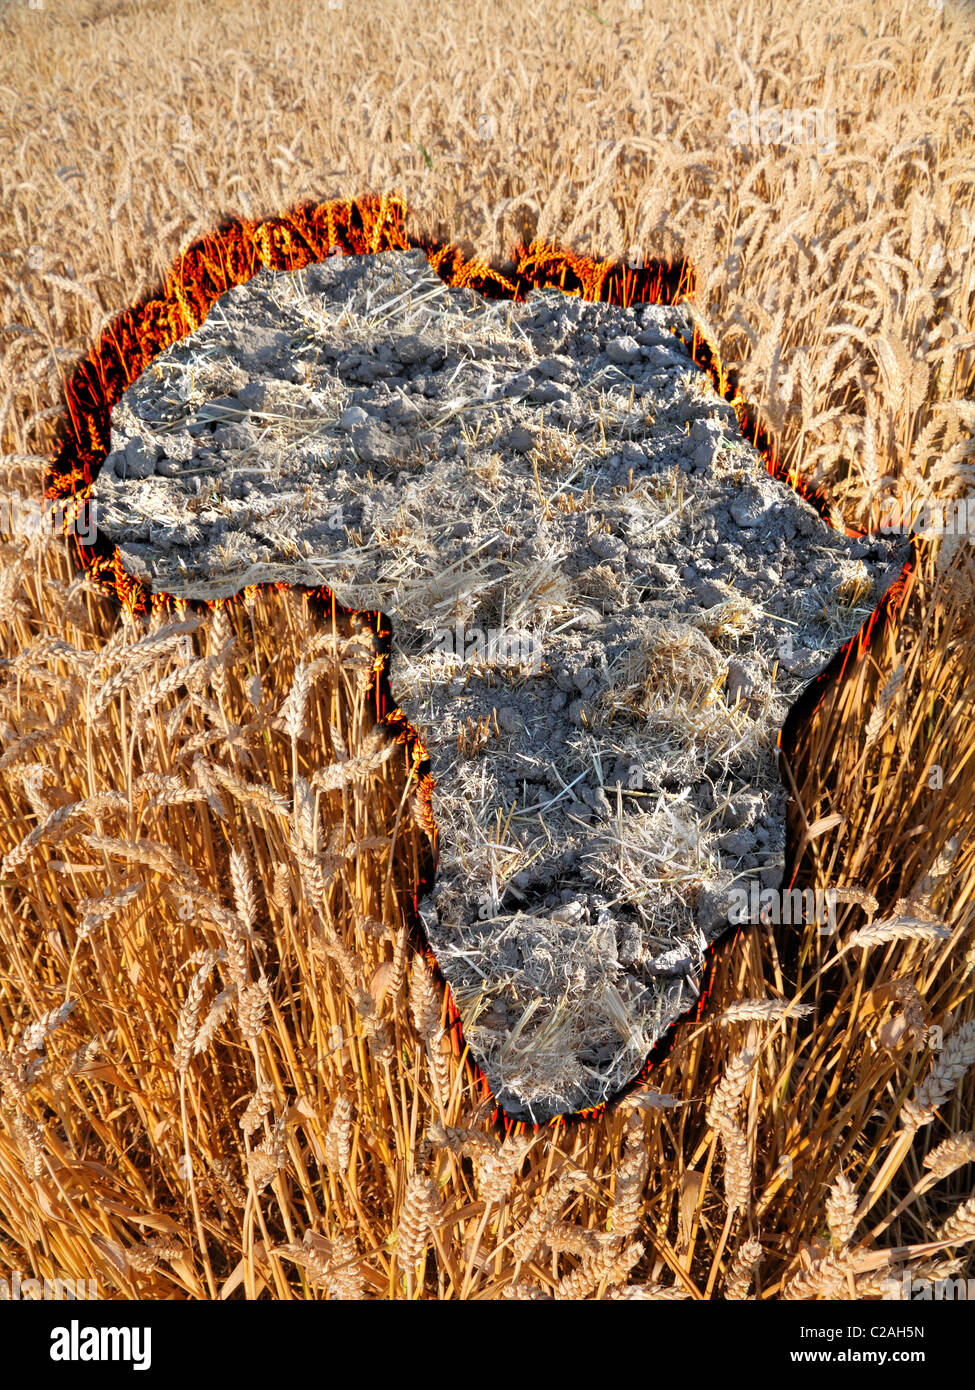 no hope for africa :, dry patch of land in the shape of africa amidst a wheat field - Stock Image